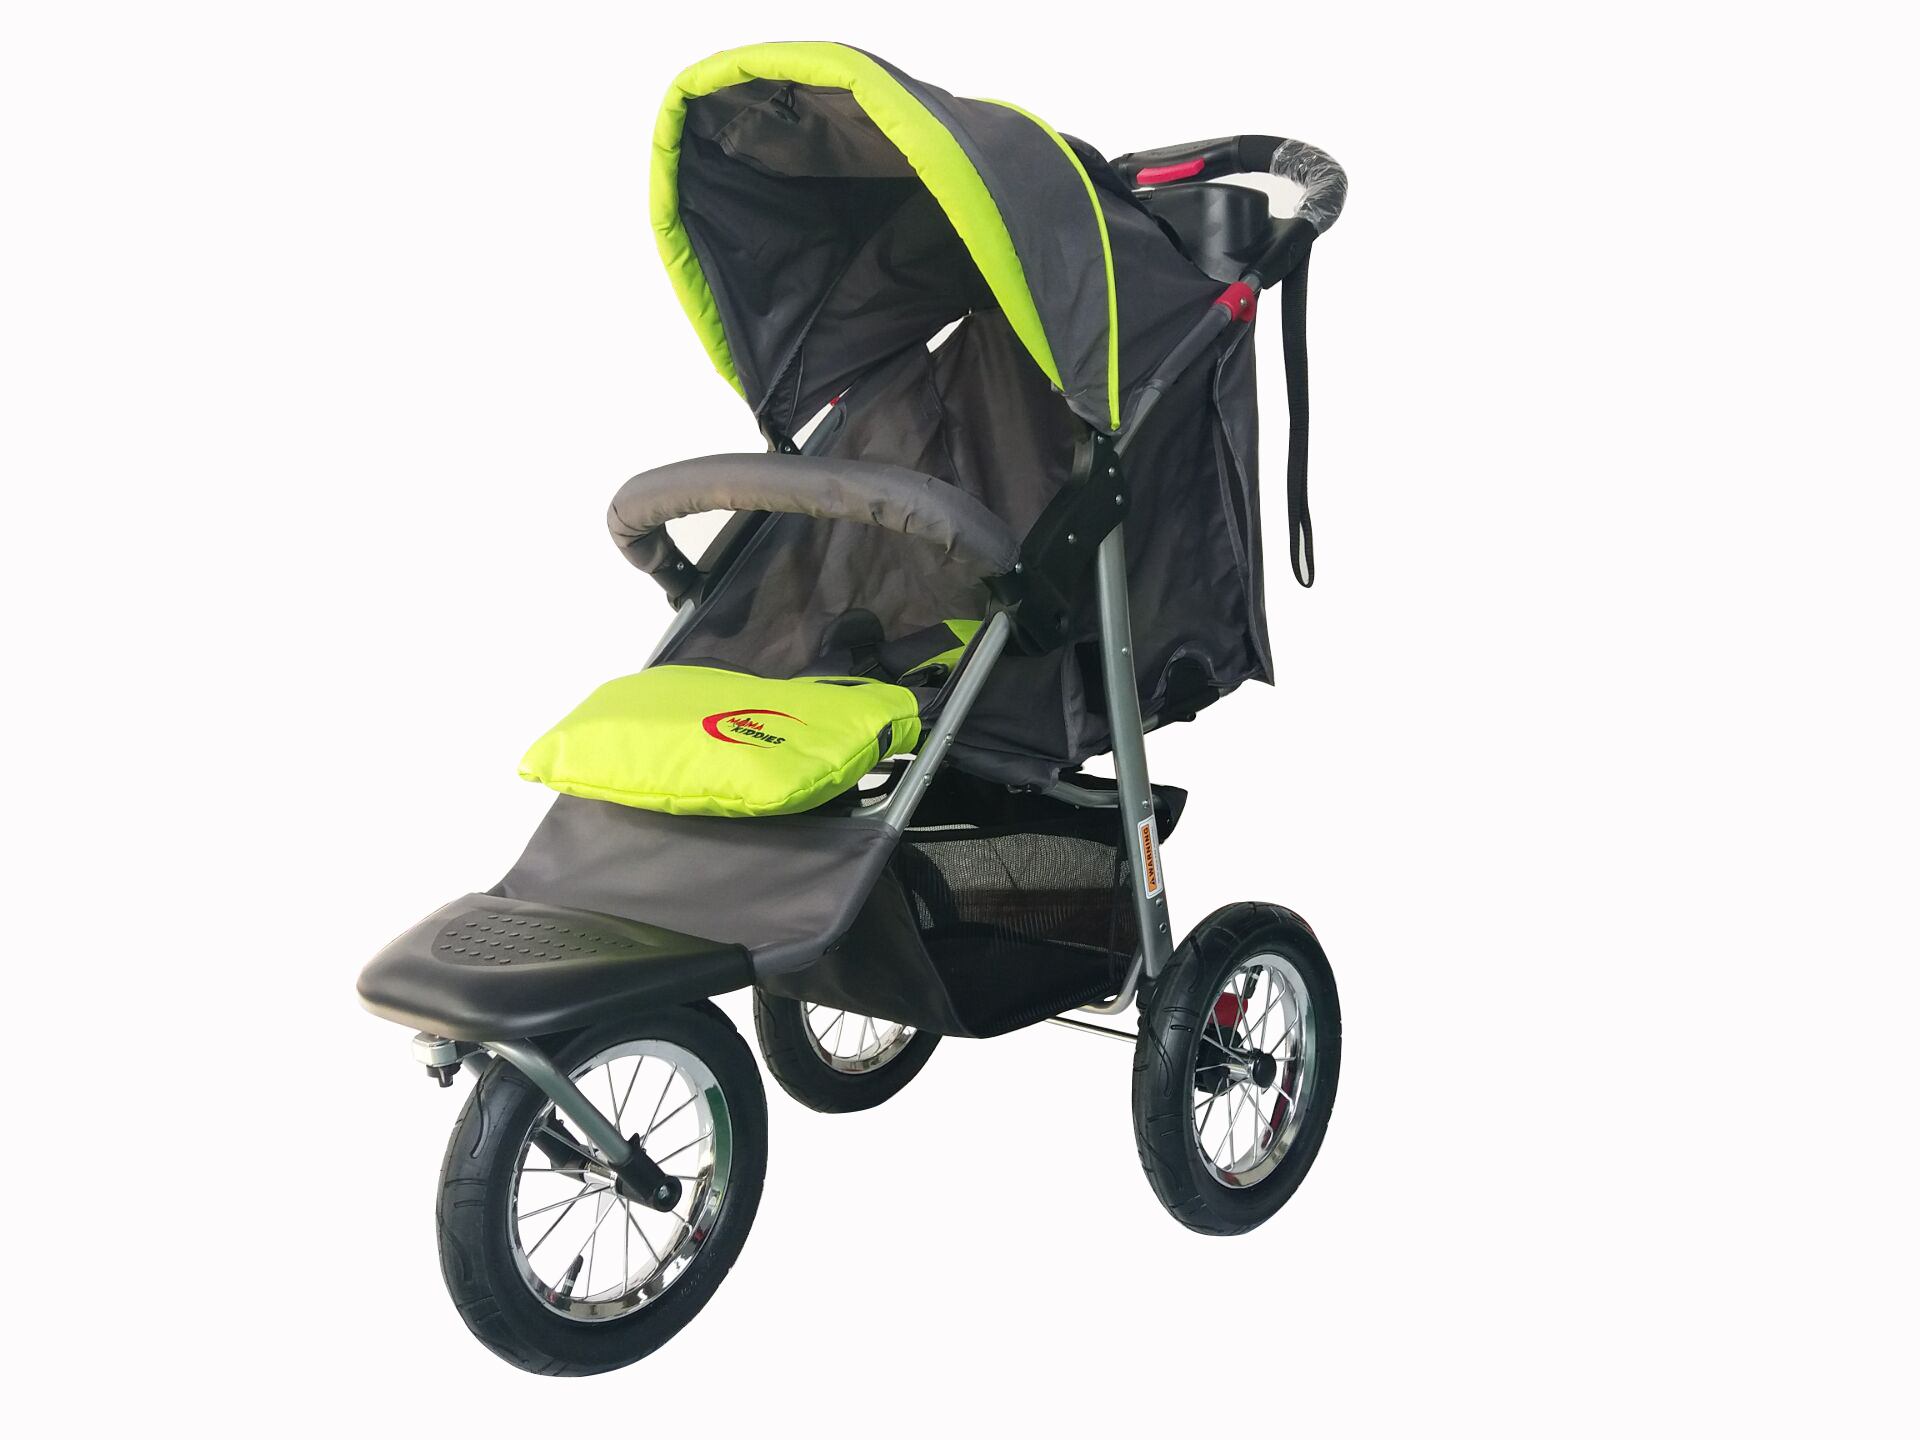 3 Wheel Baby Prams Details About Brand New 3 Wheel Green Jogger Baby Pram Buggy Baby Stroller Jogger